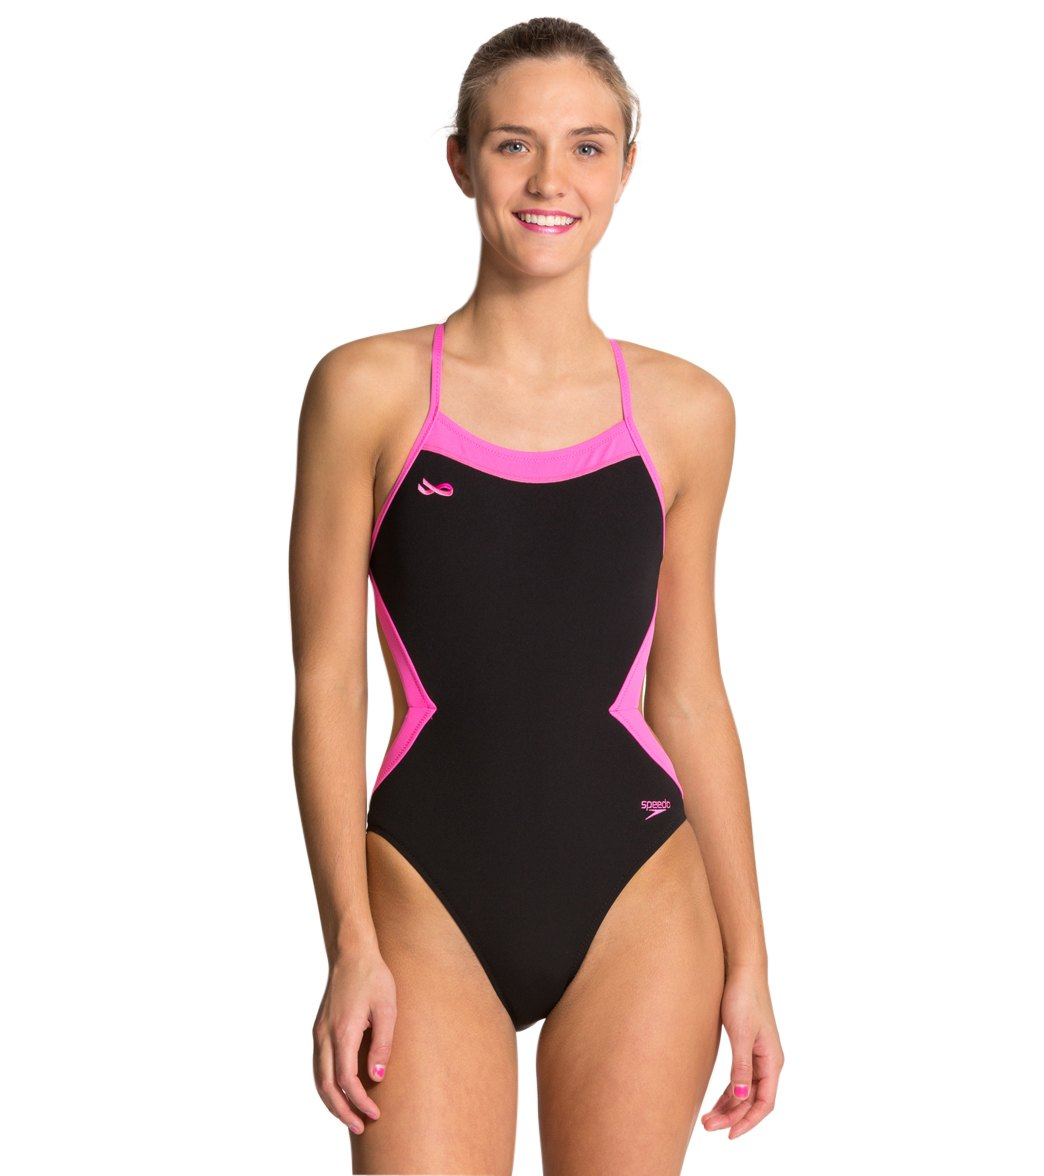 42edc20d50232 ... Speedo BS4H Color Block One Piece Swimsuit Play Video. MODEL  MEASUREMENTS